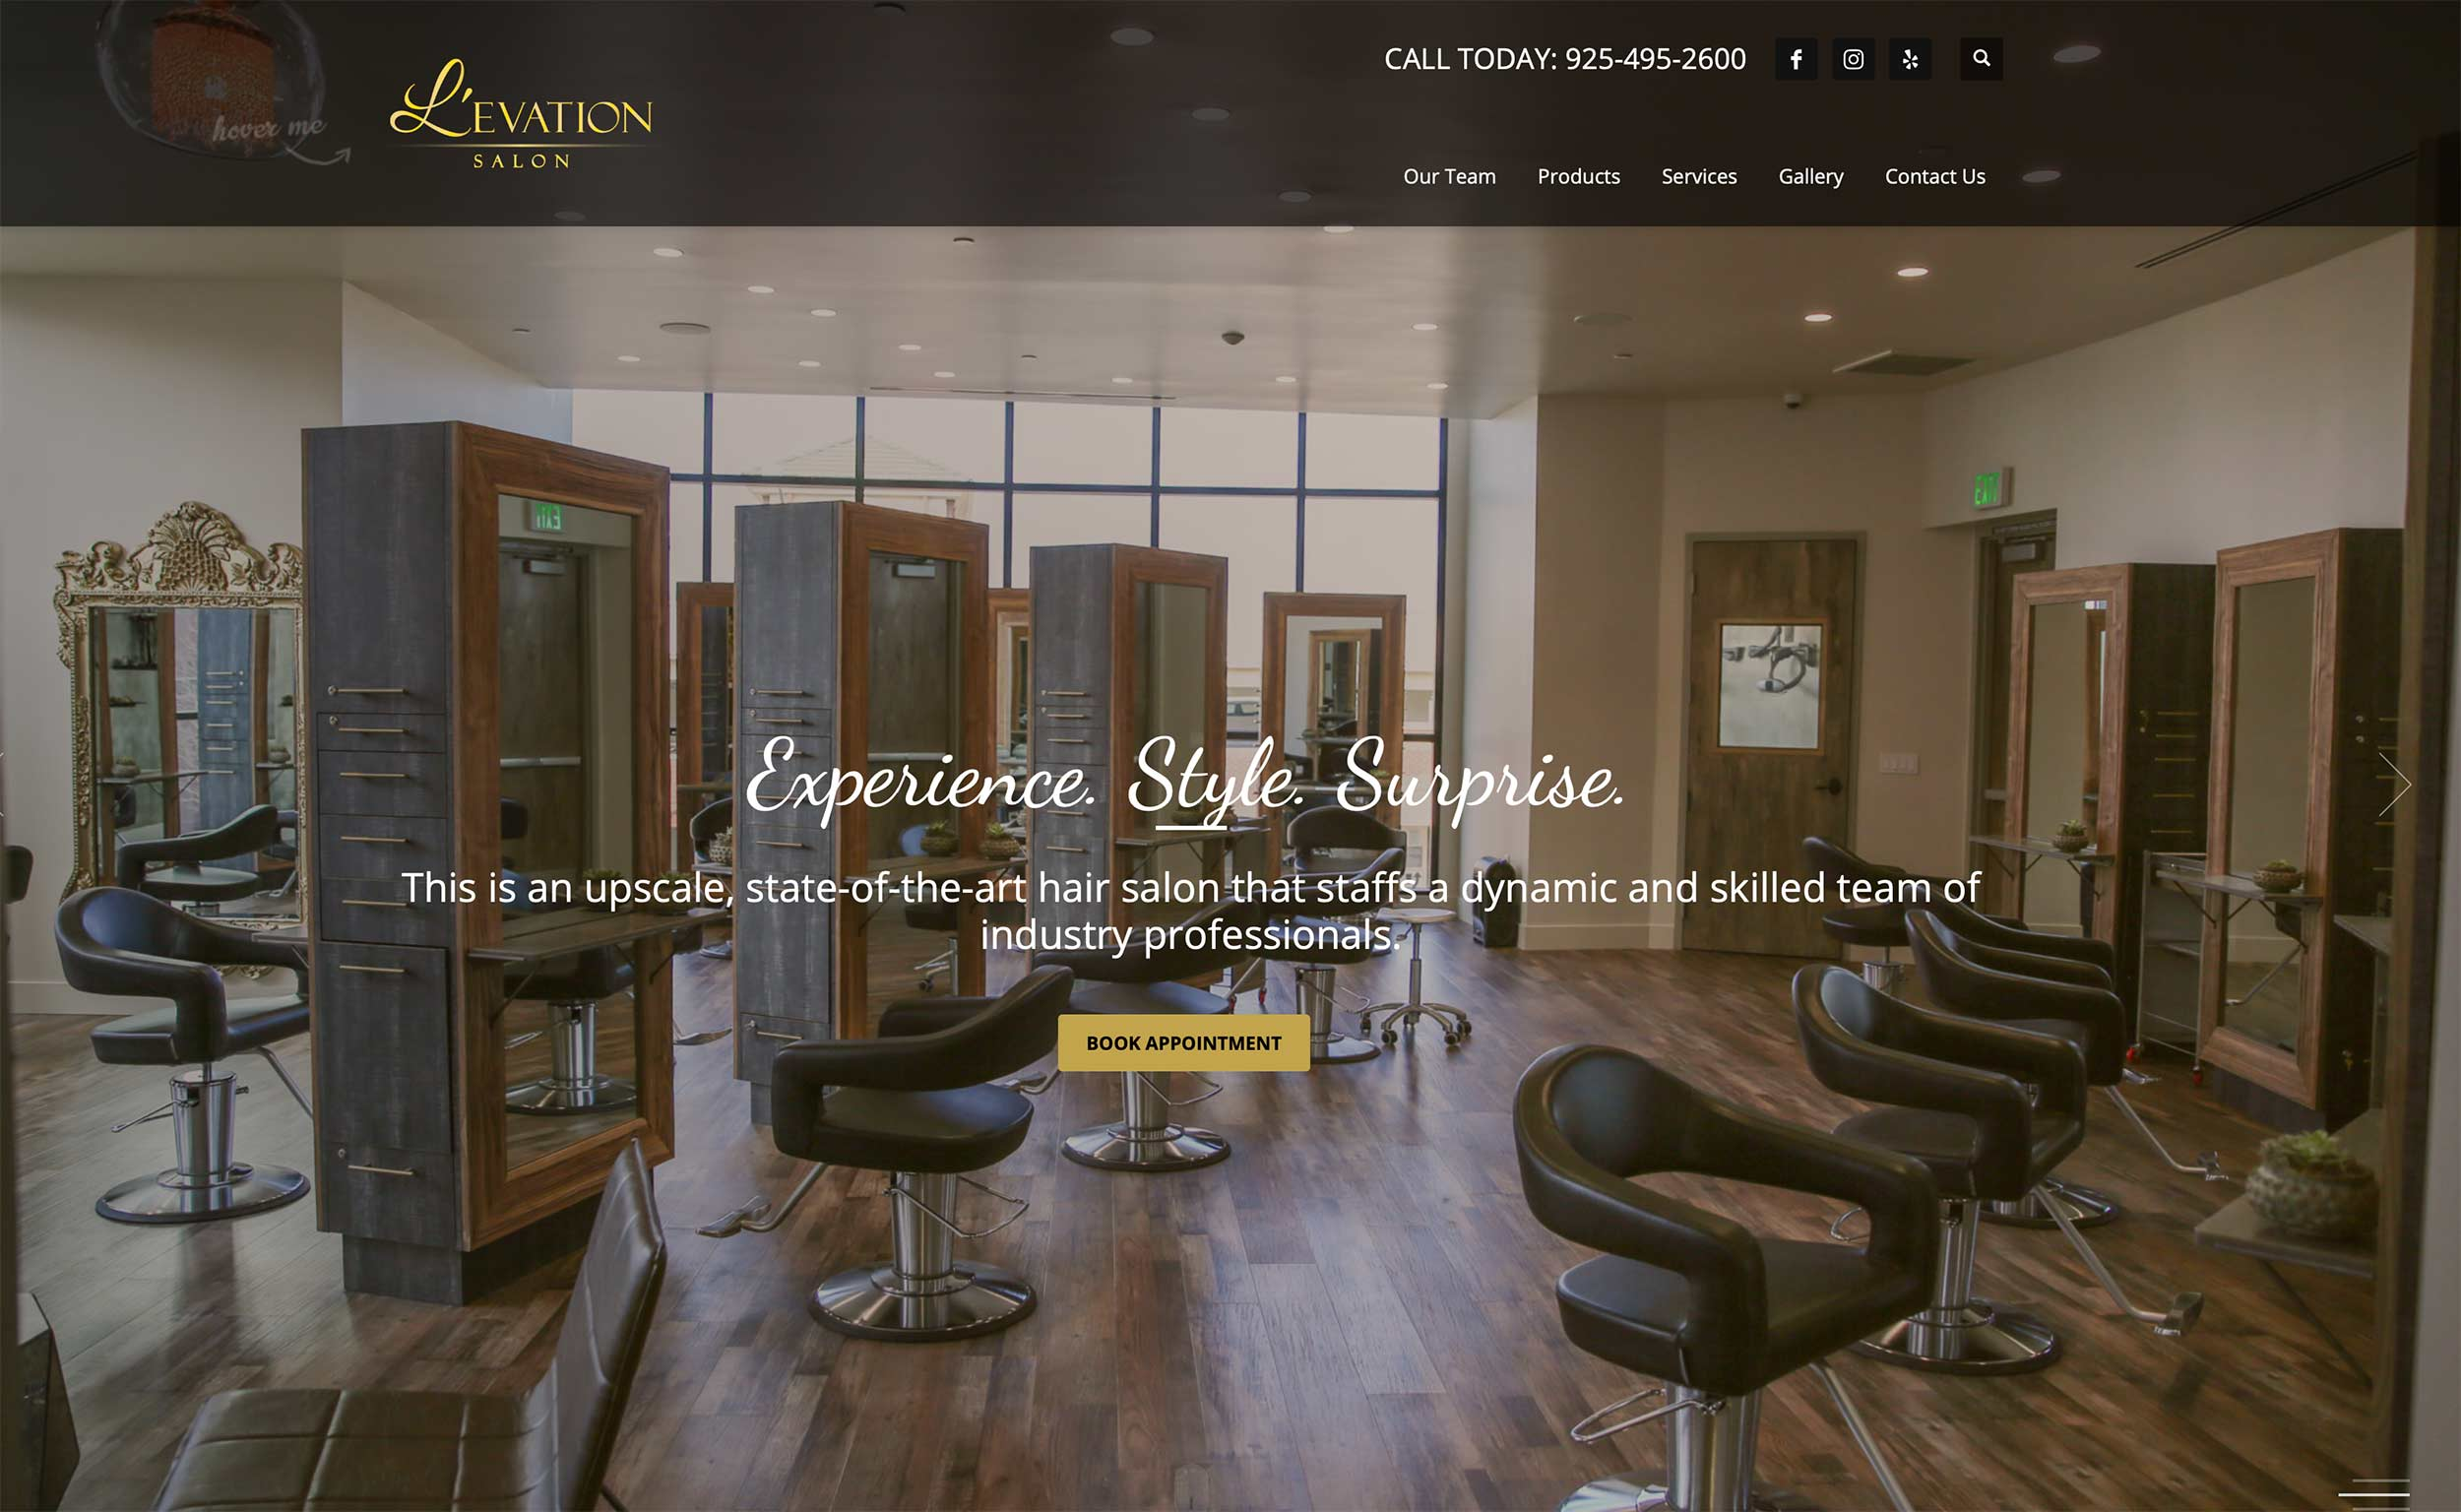 L'evation Salon